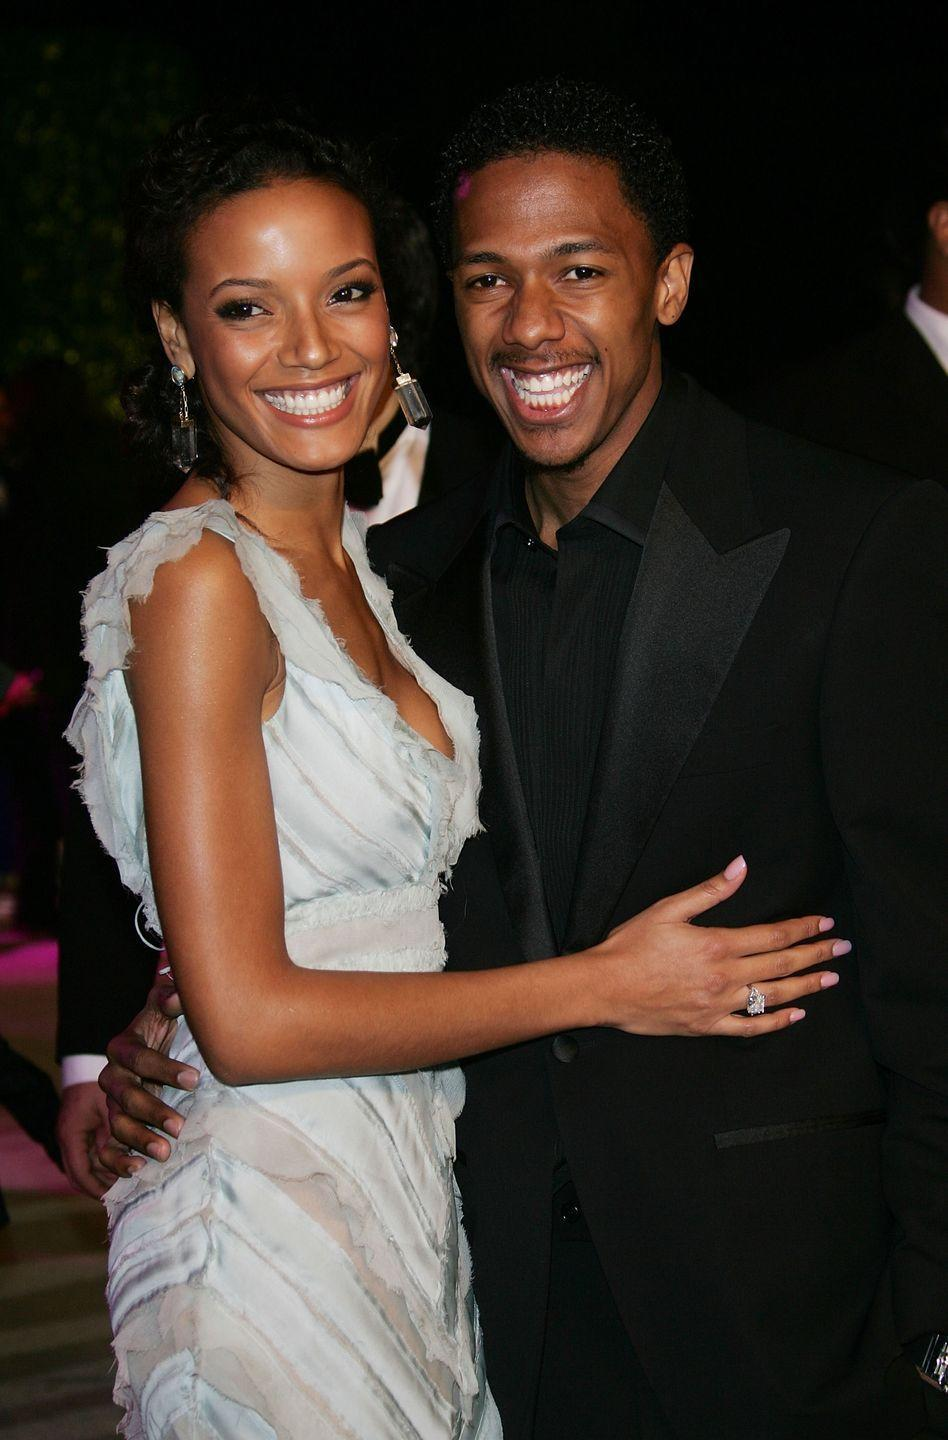 """<p>Cannon and the former Victoria's Secret model got engaged in May 2007 but decided to split up five months later. """"I was very young, he was young,"""" <a href=""""https://hellobeautiful.com/2690114/selita-ebanks-reveals-why-she-parted-ways-with-exes-terrence-j-nick-cannon/"""" rel=""""nofollow noopener"""" target=""""_blank"""" data-ylk=""""slk:Banks said"""" class=""""link rapid-noclick-resp"""">Banks said</a>. """"Everything happens for a reason. It taught me a lot, especially with media. Y'all was brutal. I was called everything under the sun for just getting engaged.<span class=""""redactor-invisible-space"""">"""" </span></p>"""